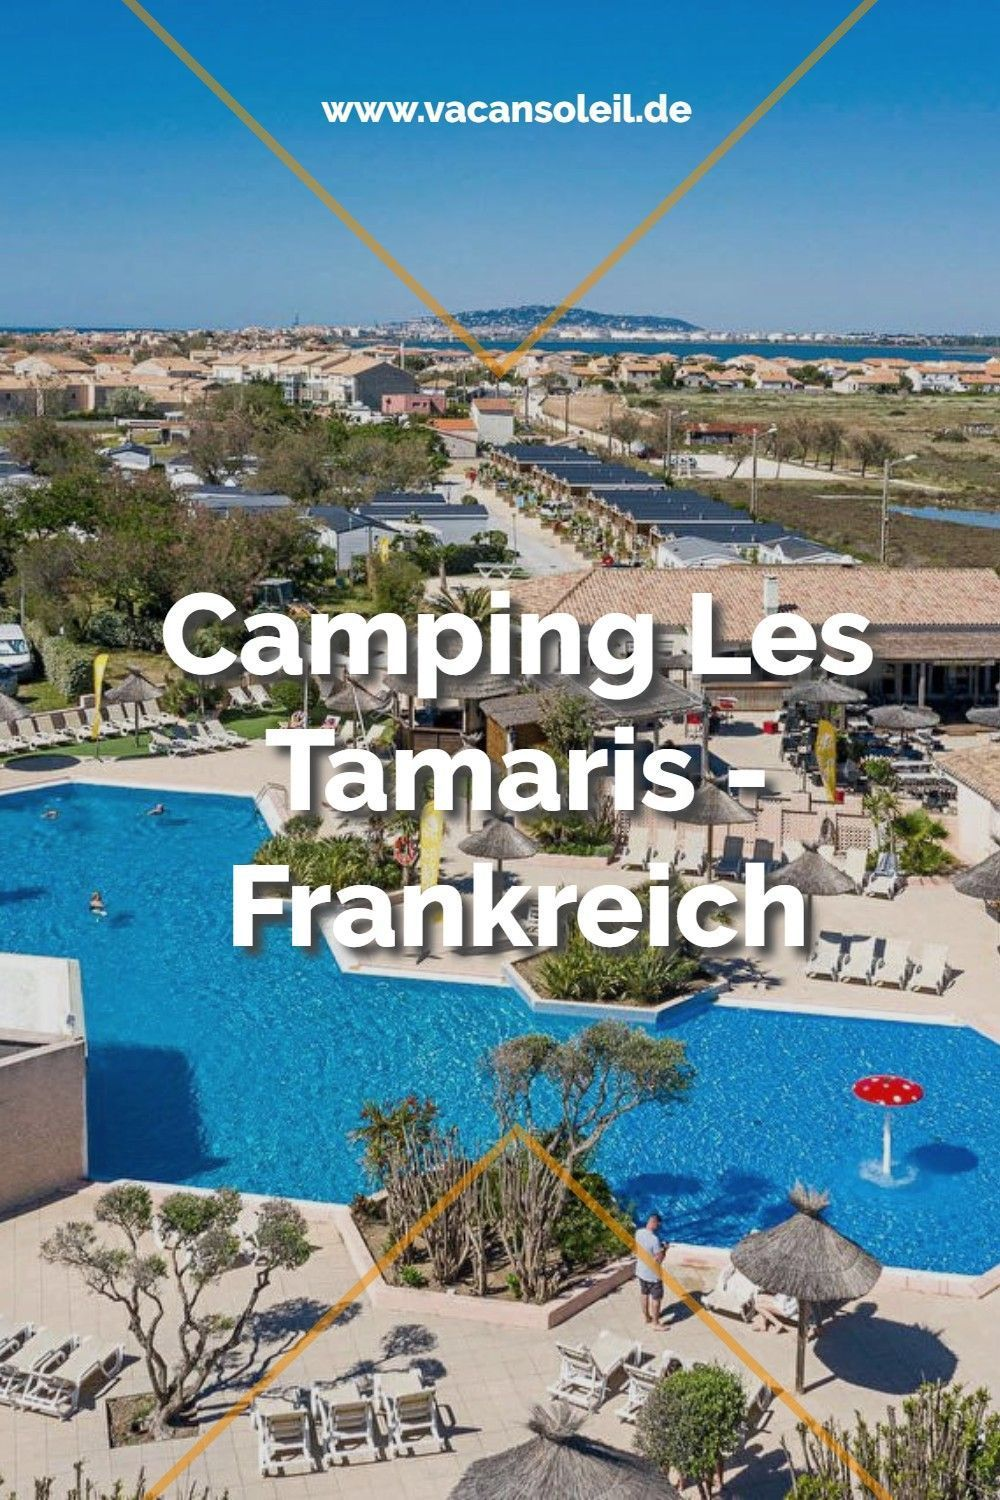 Camping Les Tamaris - Frankreich - Vacansoleil in 2021 ...